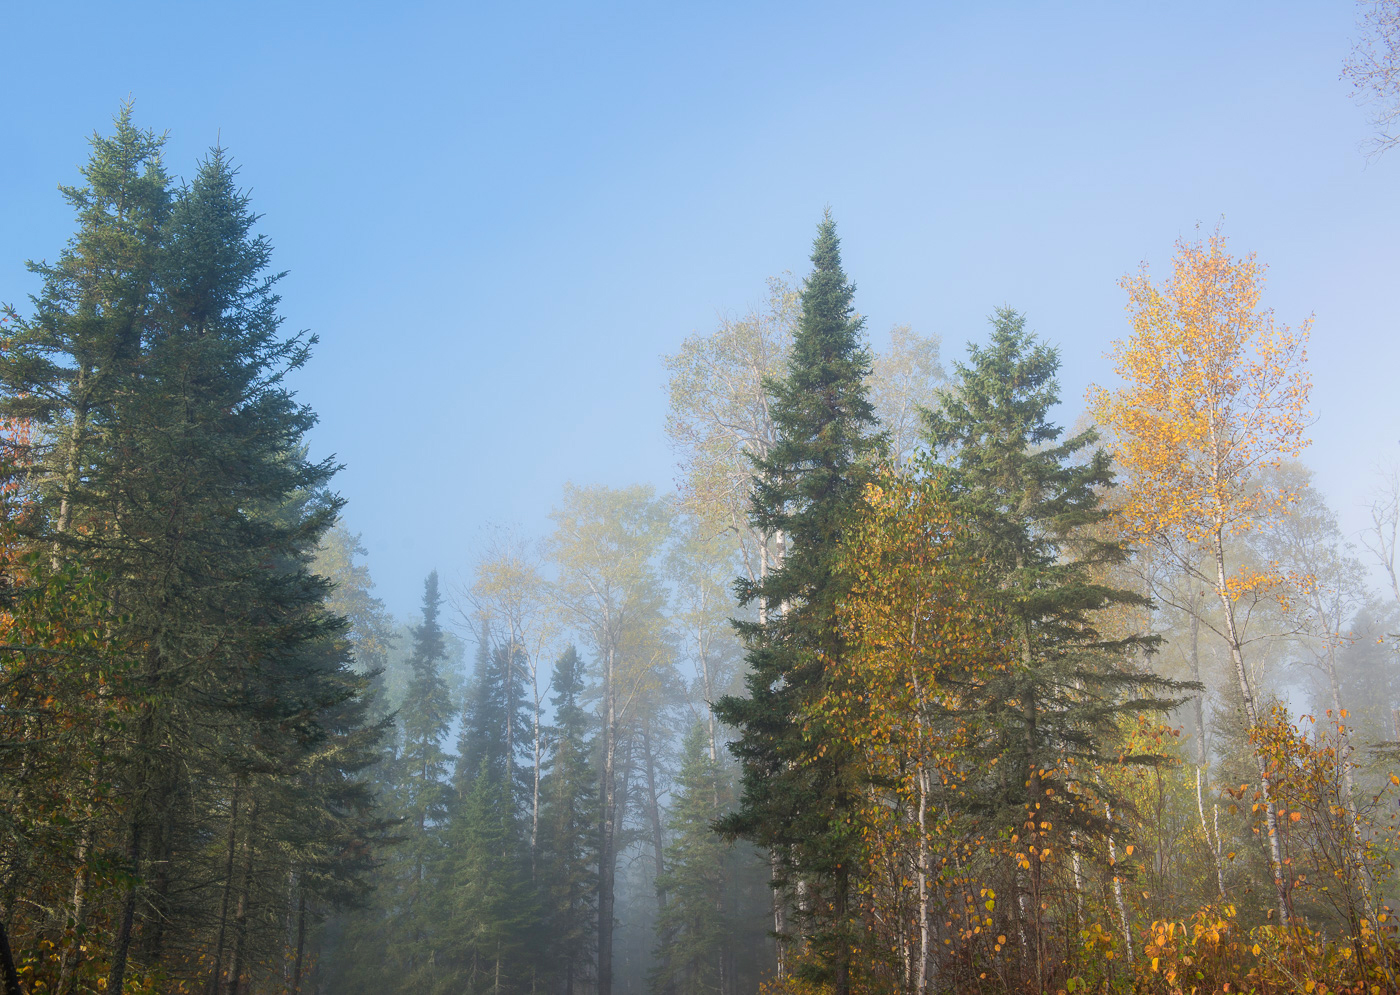 Fog over Superior National Forest in autumn, Minnesota